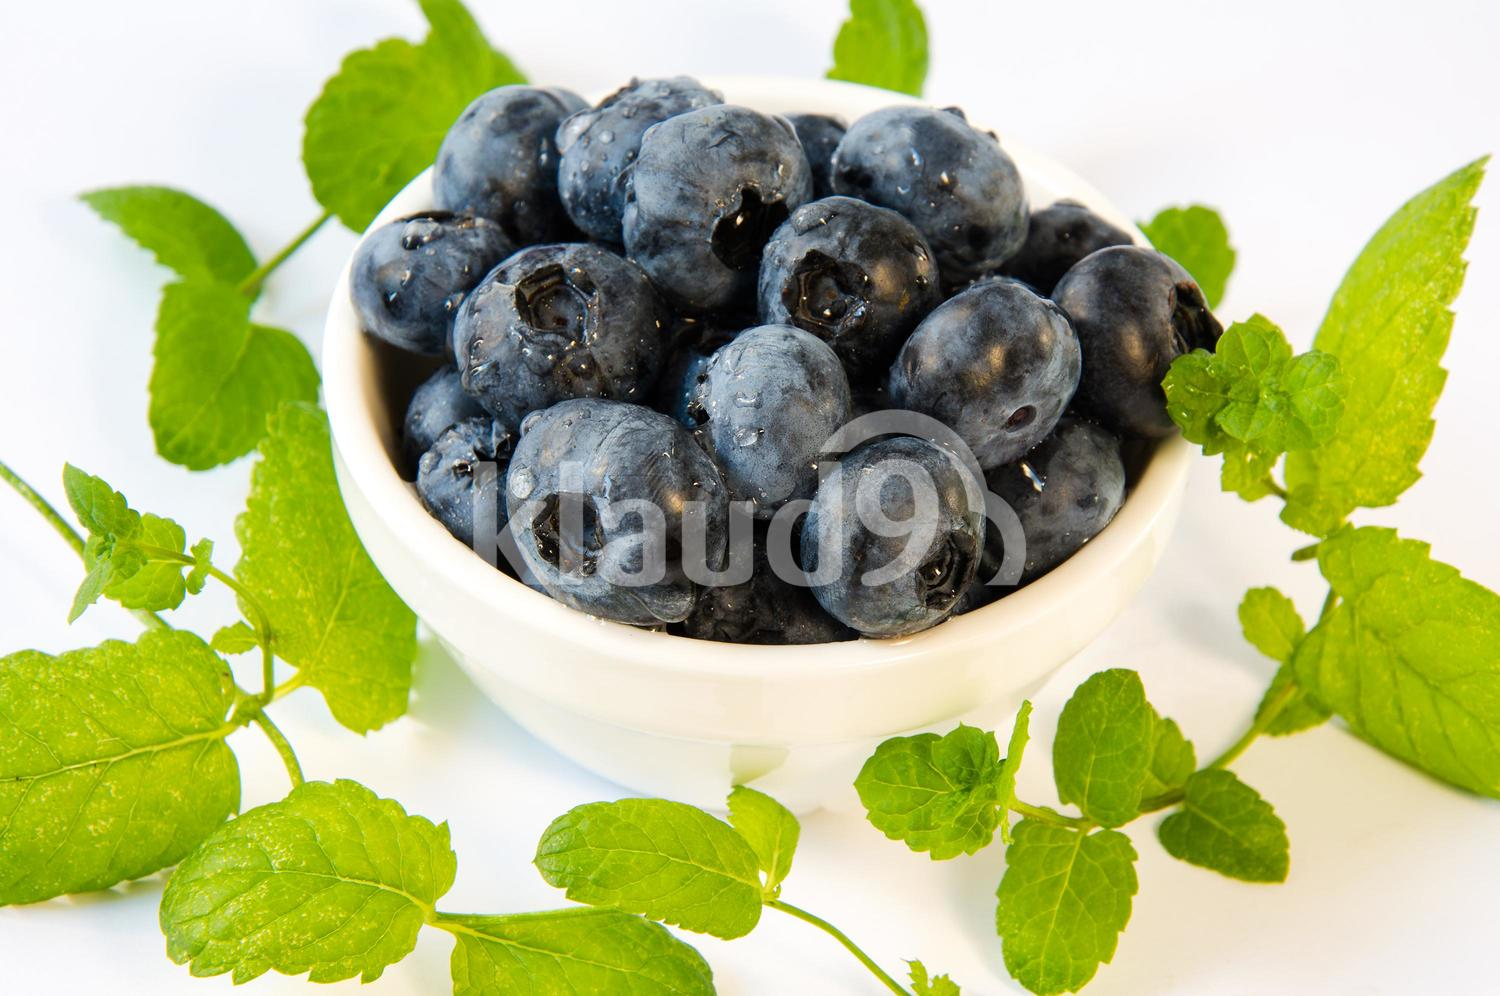 blueberries in a plate on a table